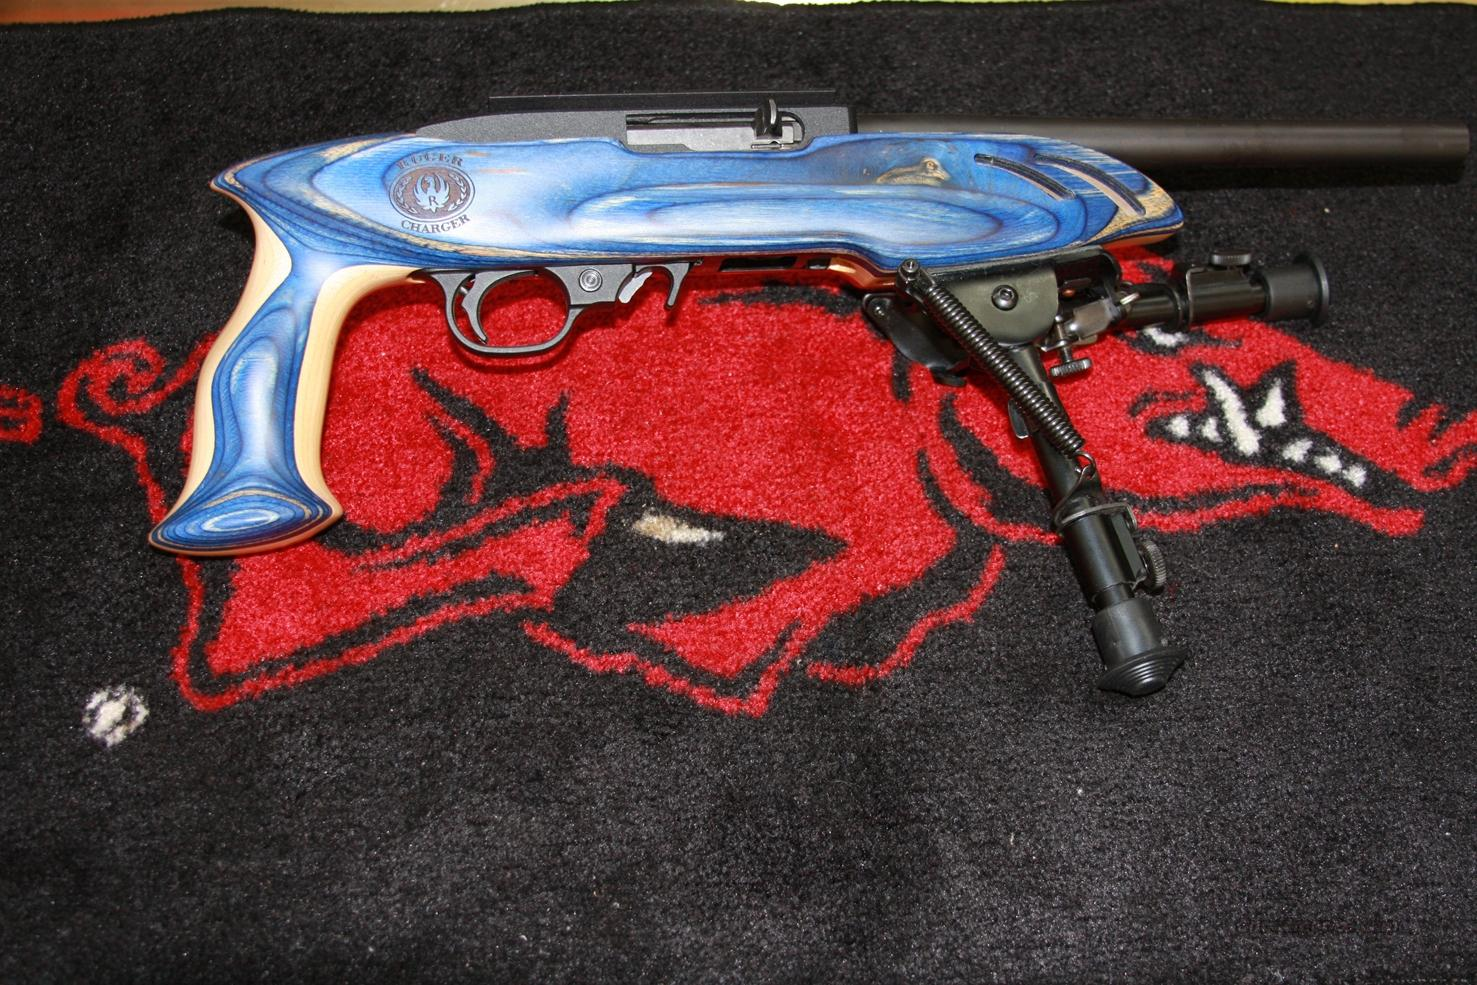 Ruger Charger Patriotic colors  Guns > Pistols > Ruger Semi-Auto Pistols > Charger Series